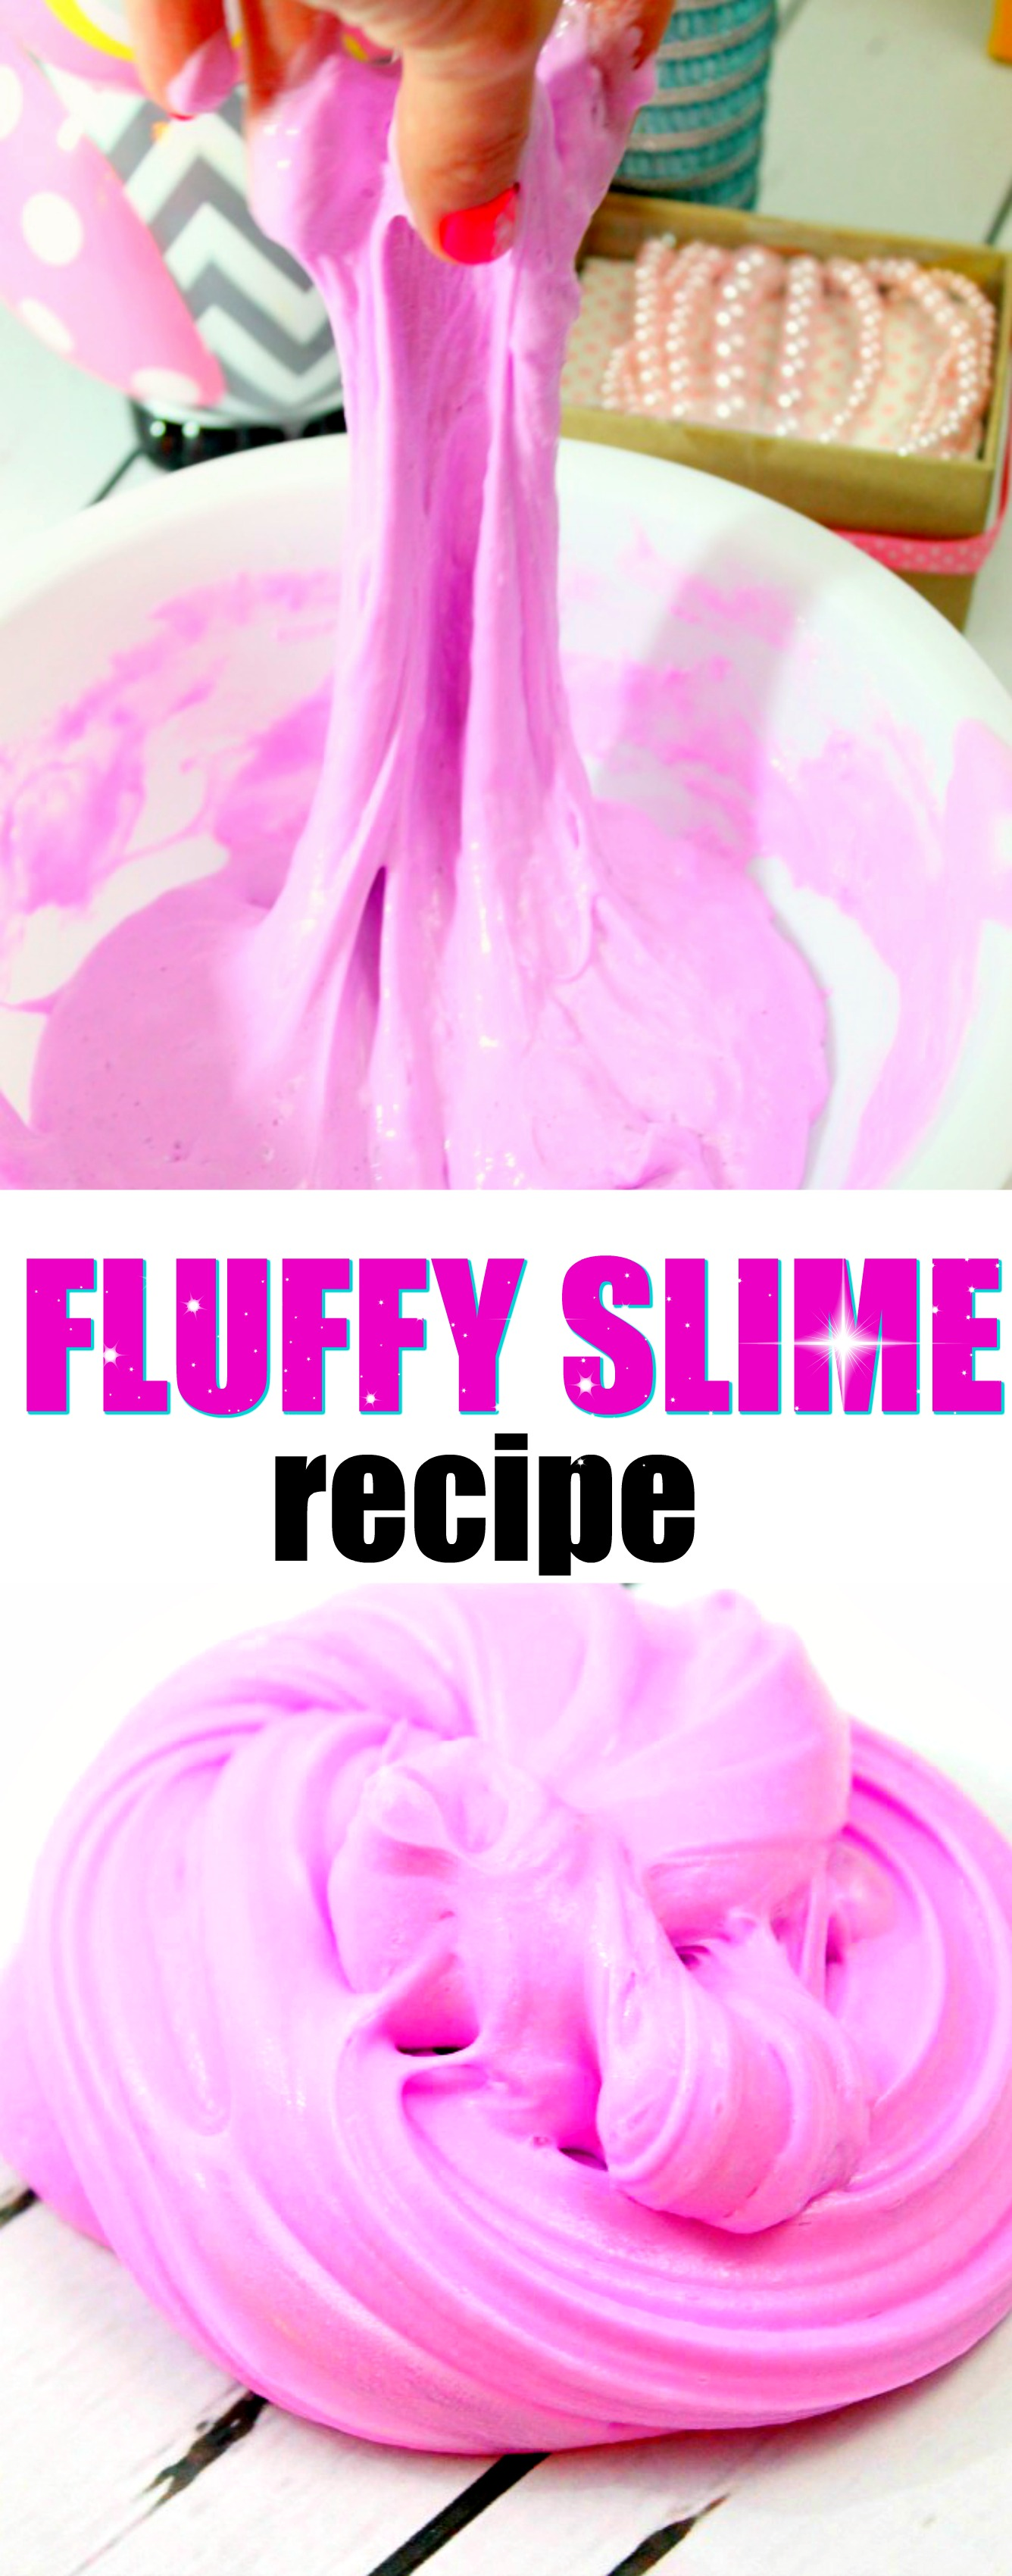 How To Make Fluffy Slime Stretchy